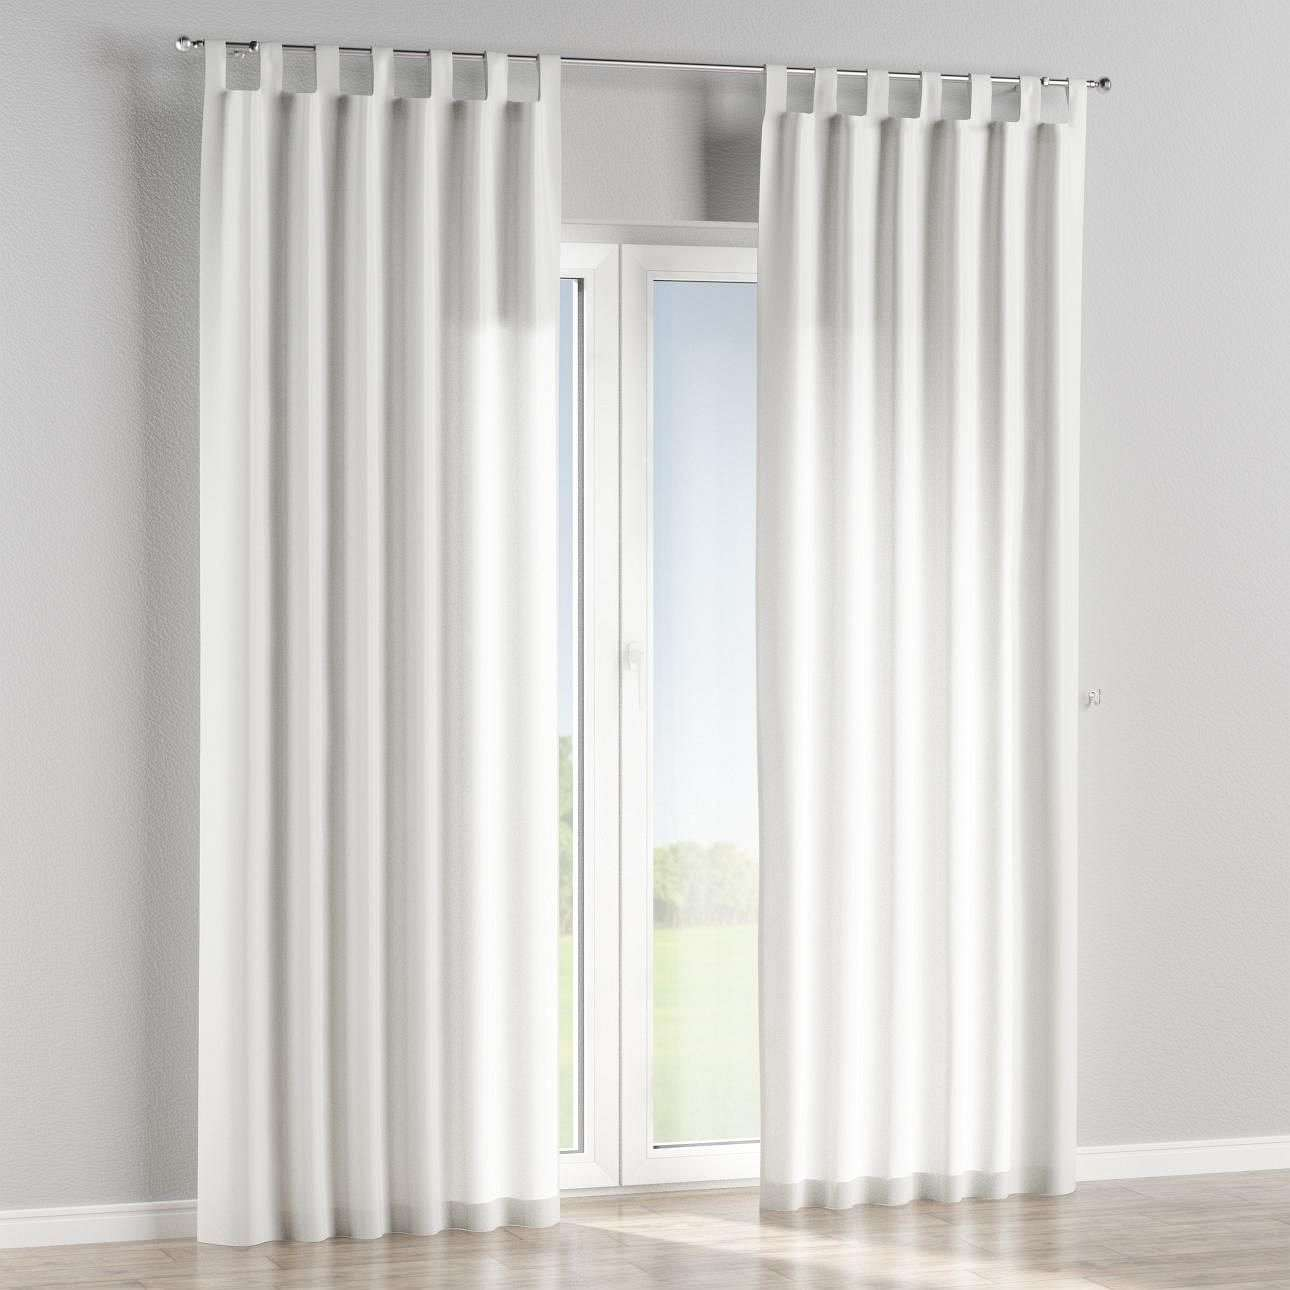 Tab top curtains in collection SALE, fabric: 130-07